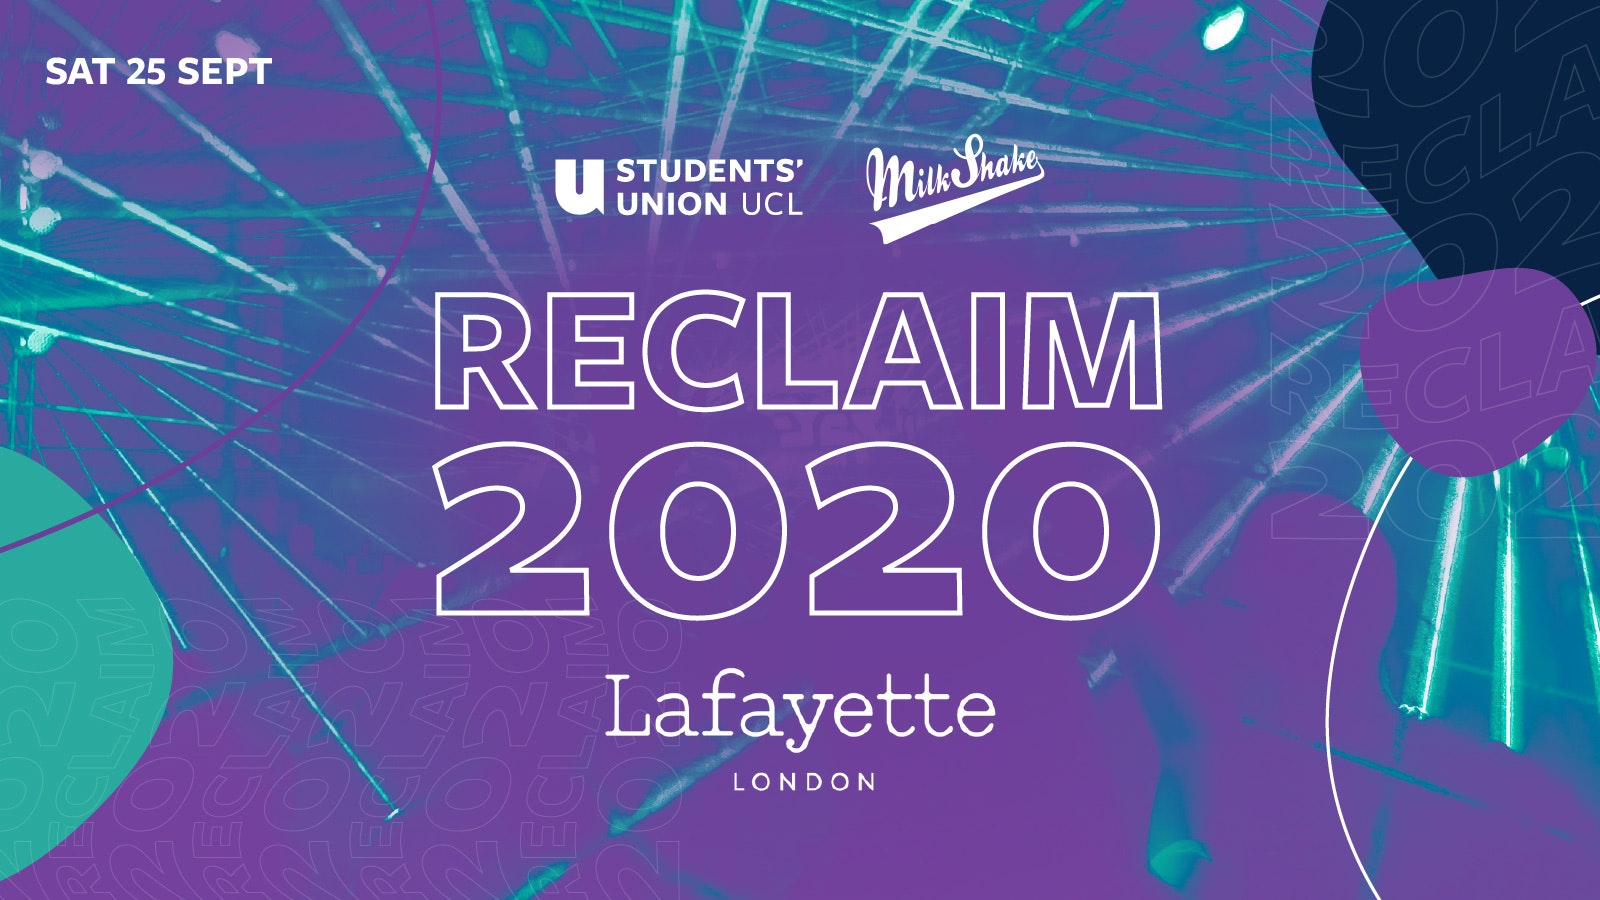 The RECLAIM 2020 Party – UCL's Official Freshers Event for 2020 Starters!!